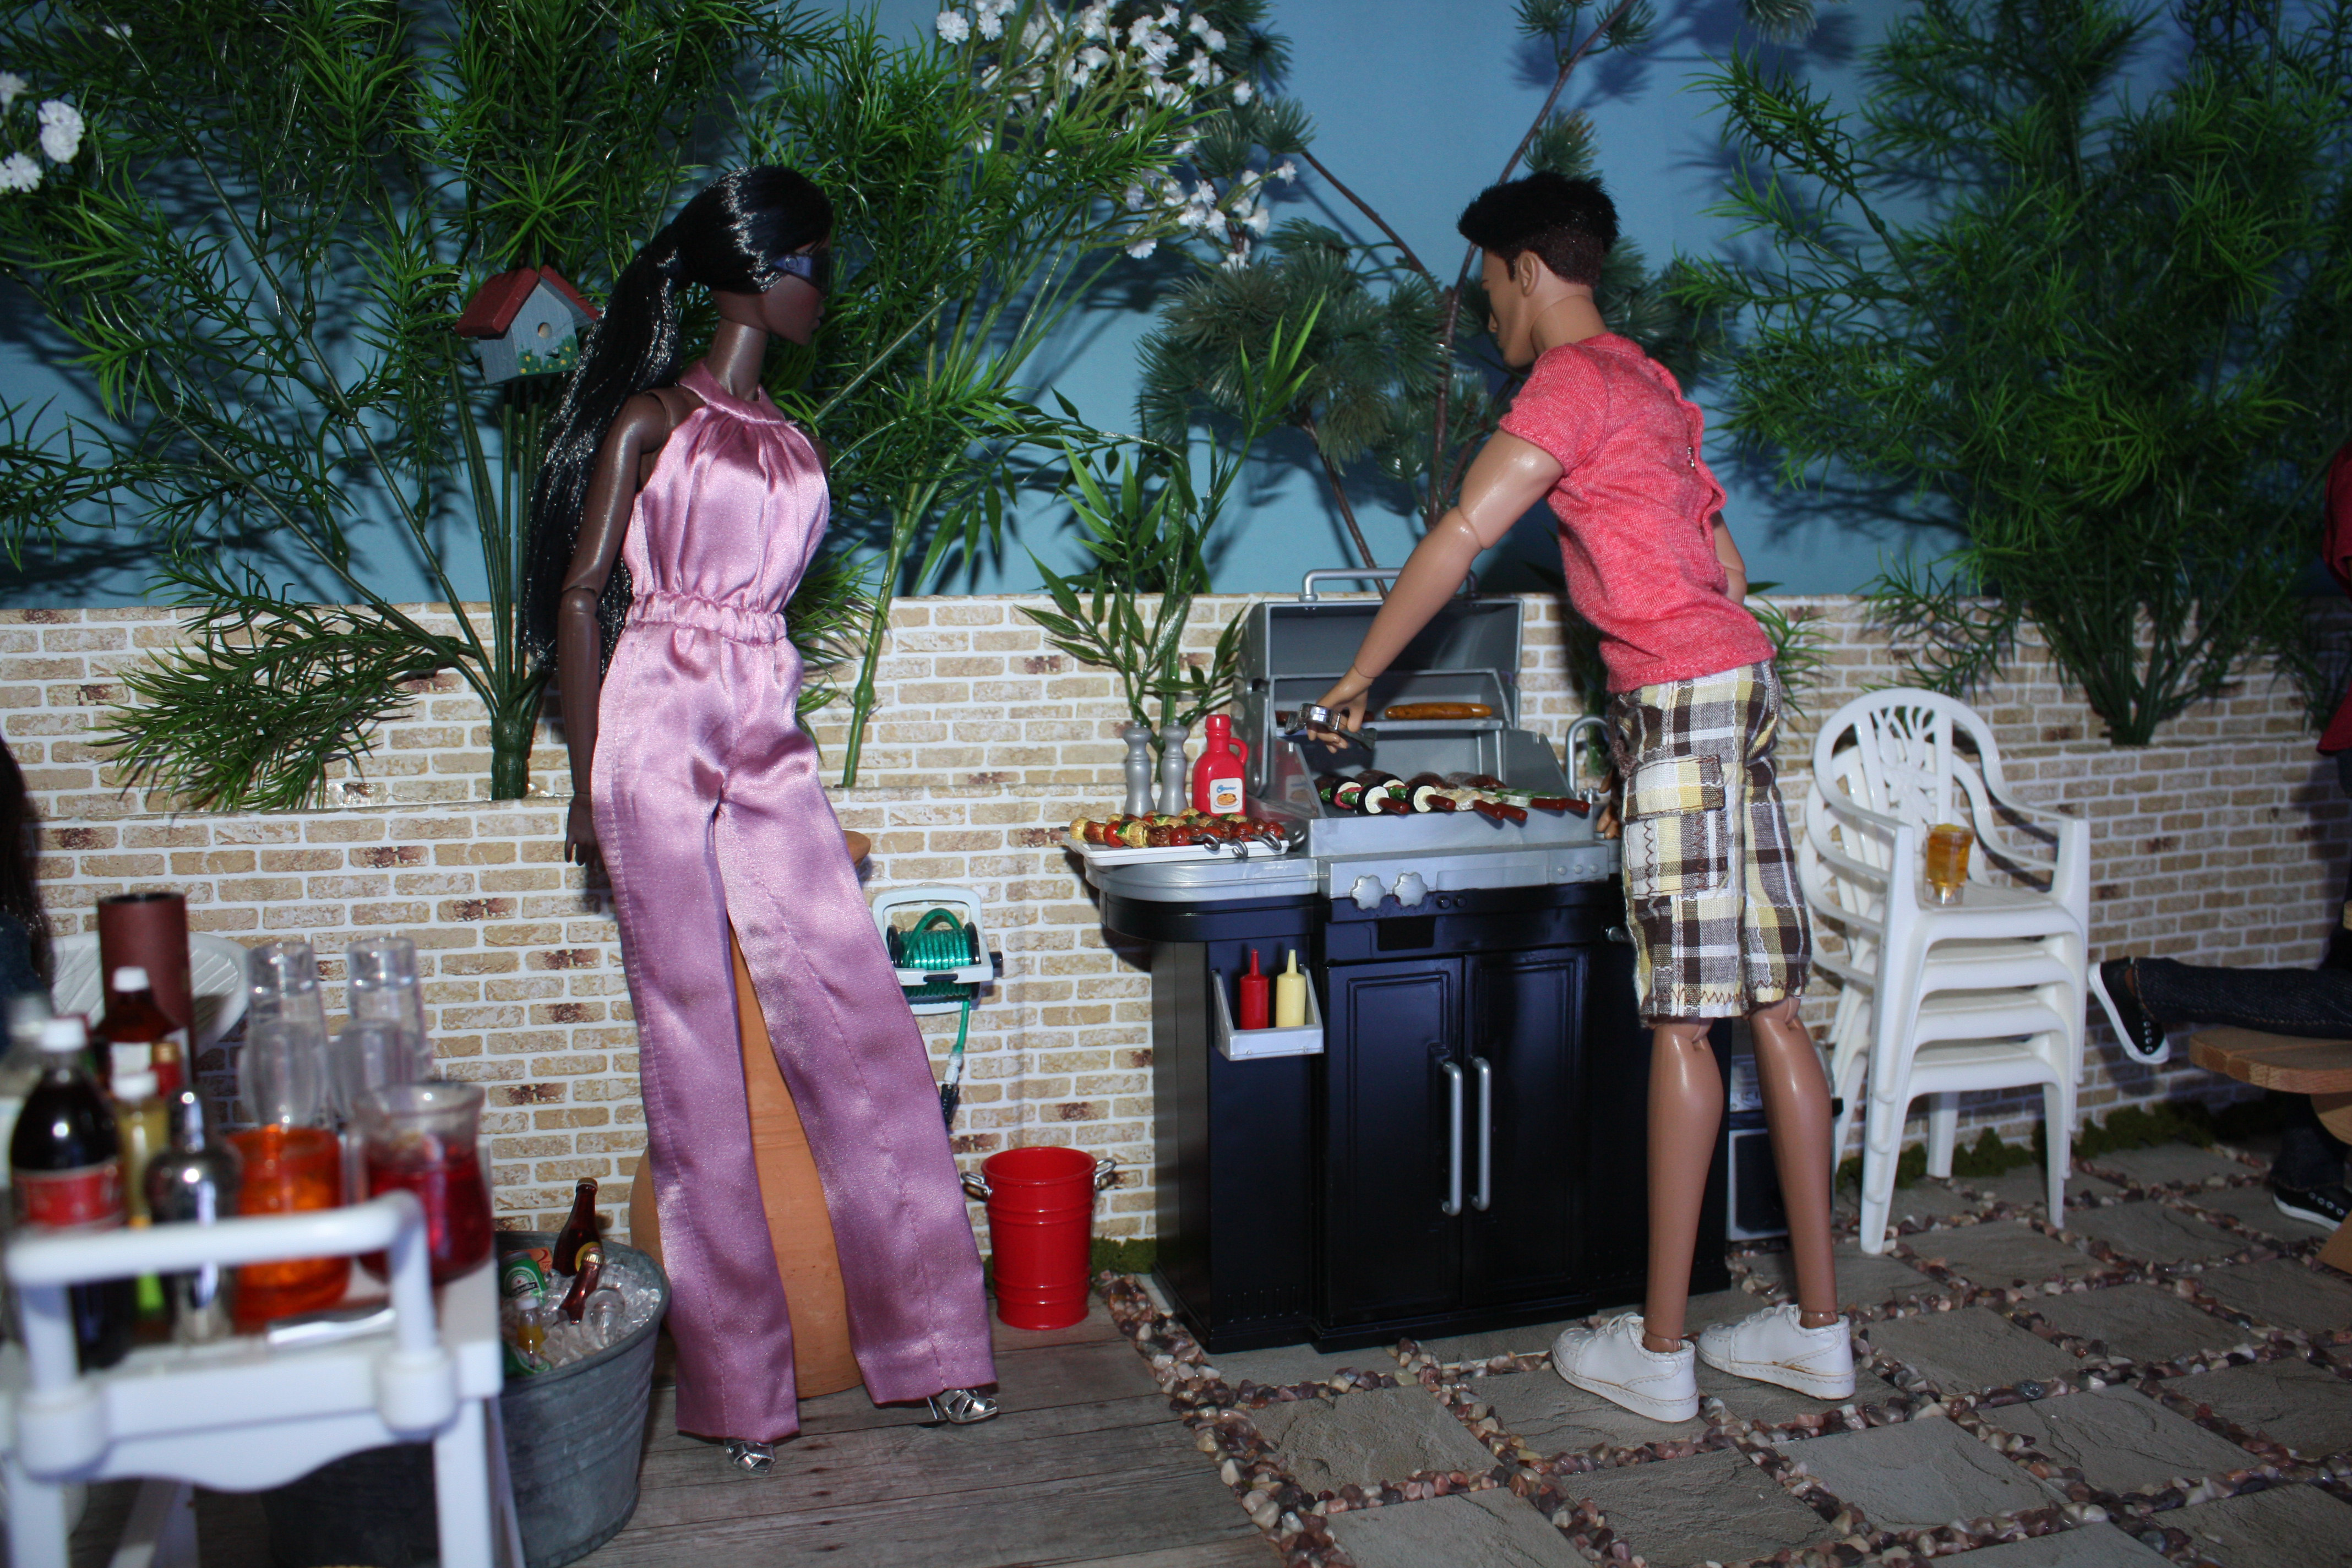 Barbeque on roof